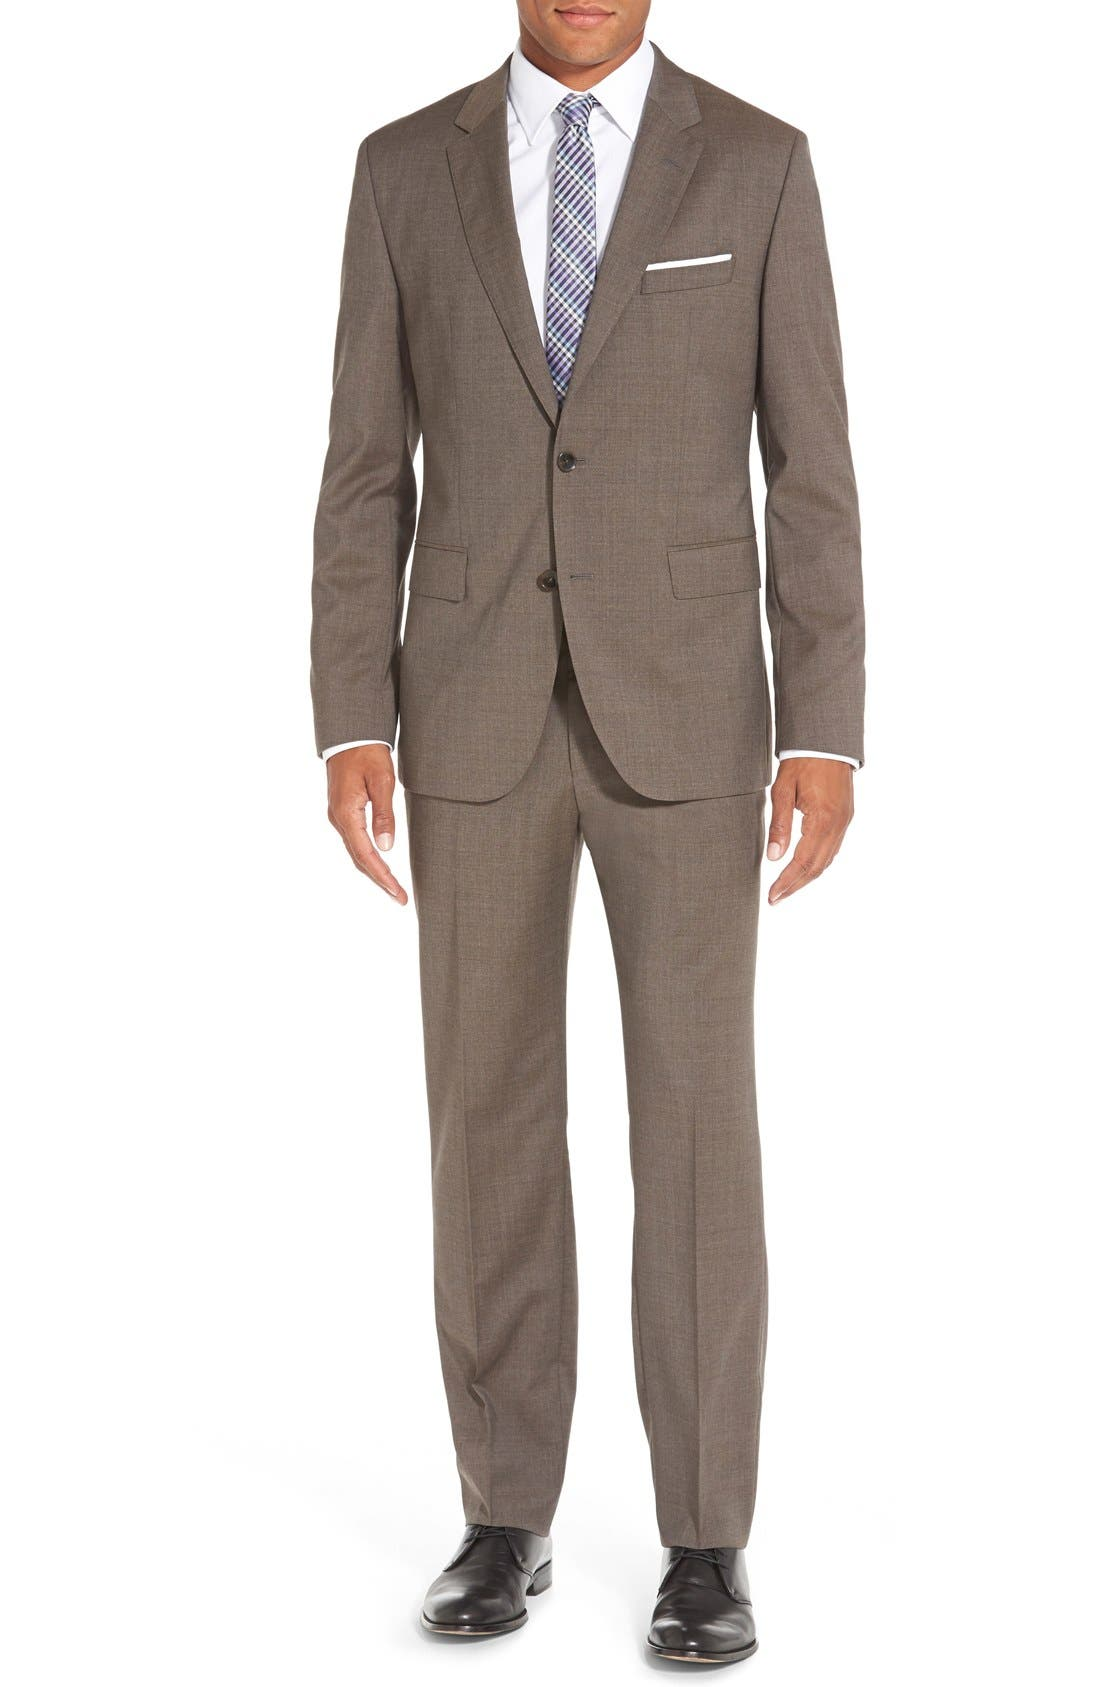 Alternate Image 1 Selected - BOSS 'Johnstons/Lenon' Trim Fit Solid Wool Suit